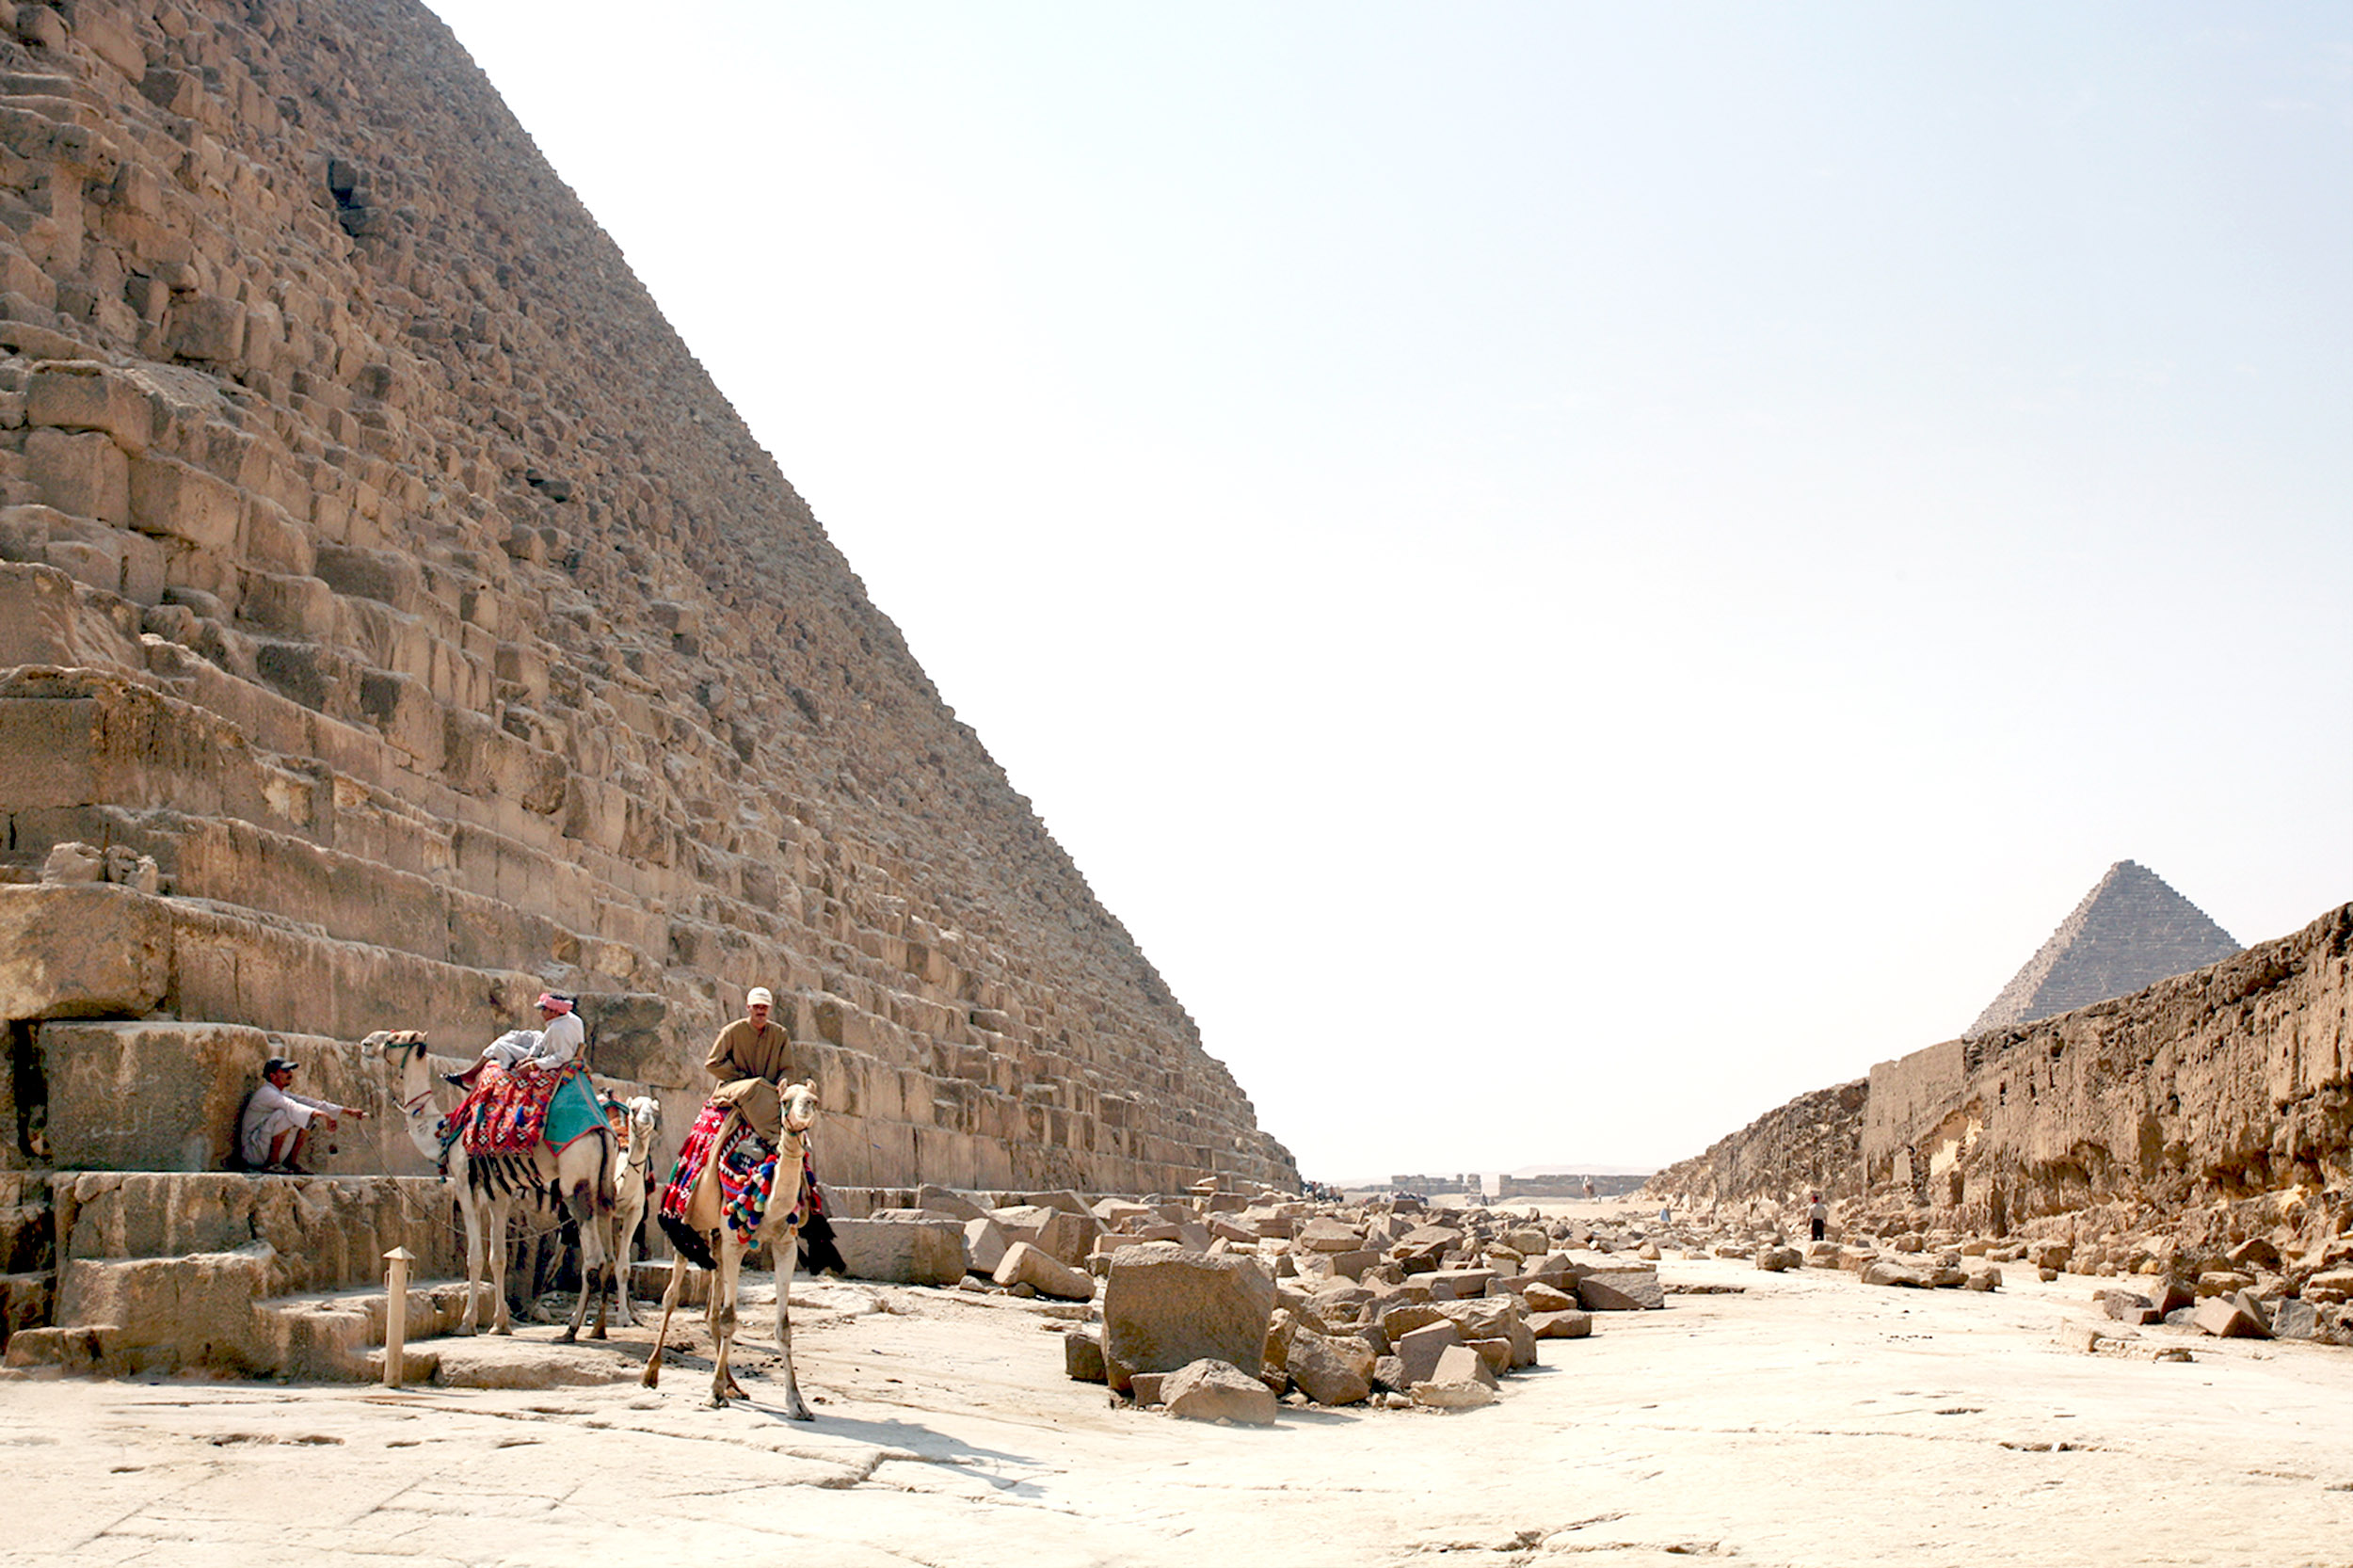 Great Pyramid of Giza (or Khufu) with a couple of camels and riders at its base, Egypt